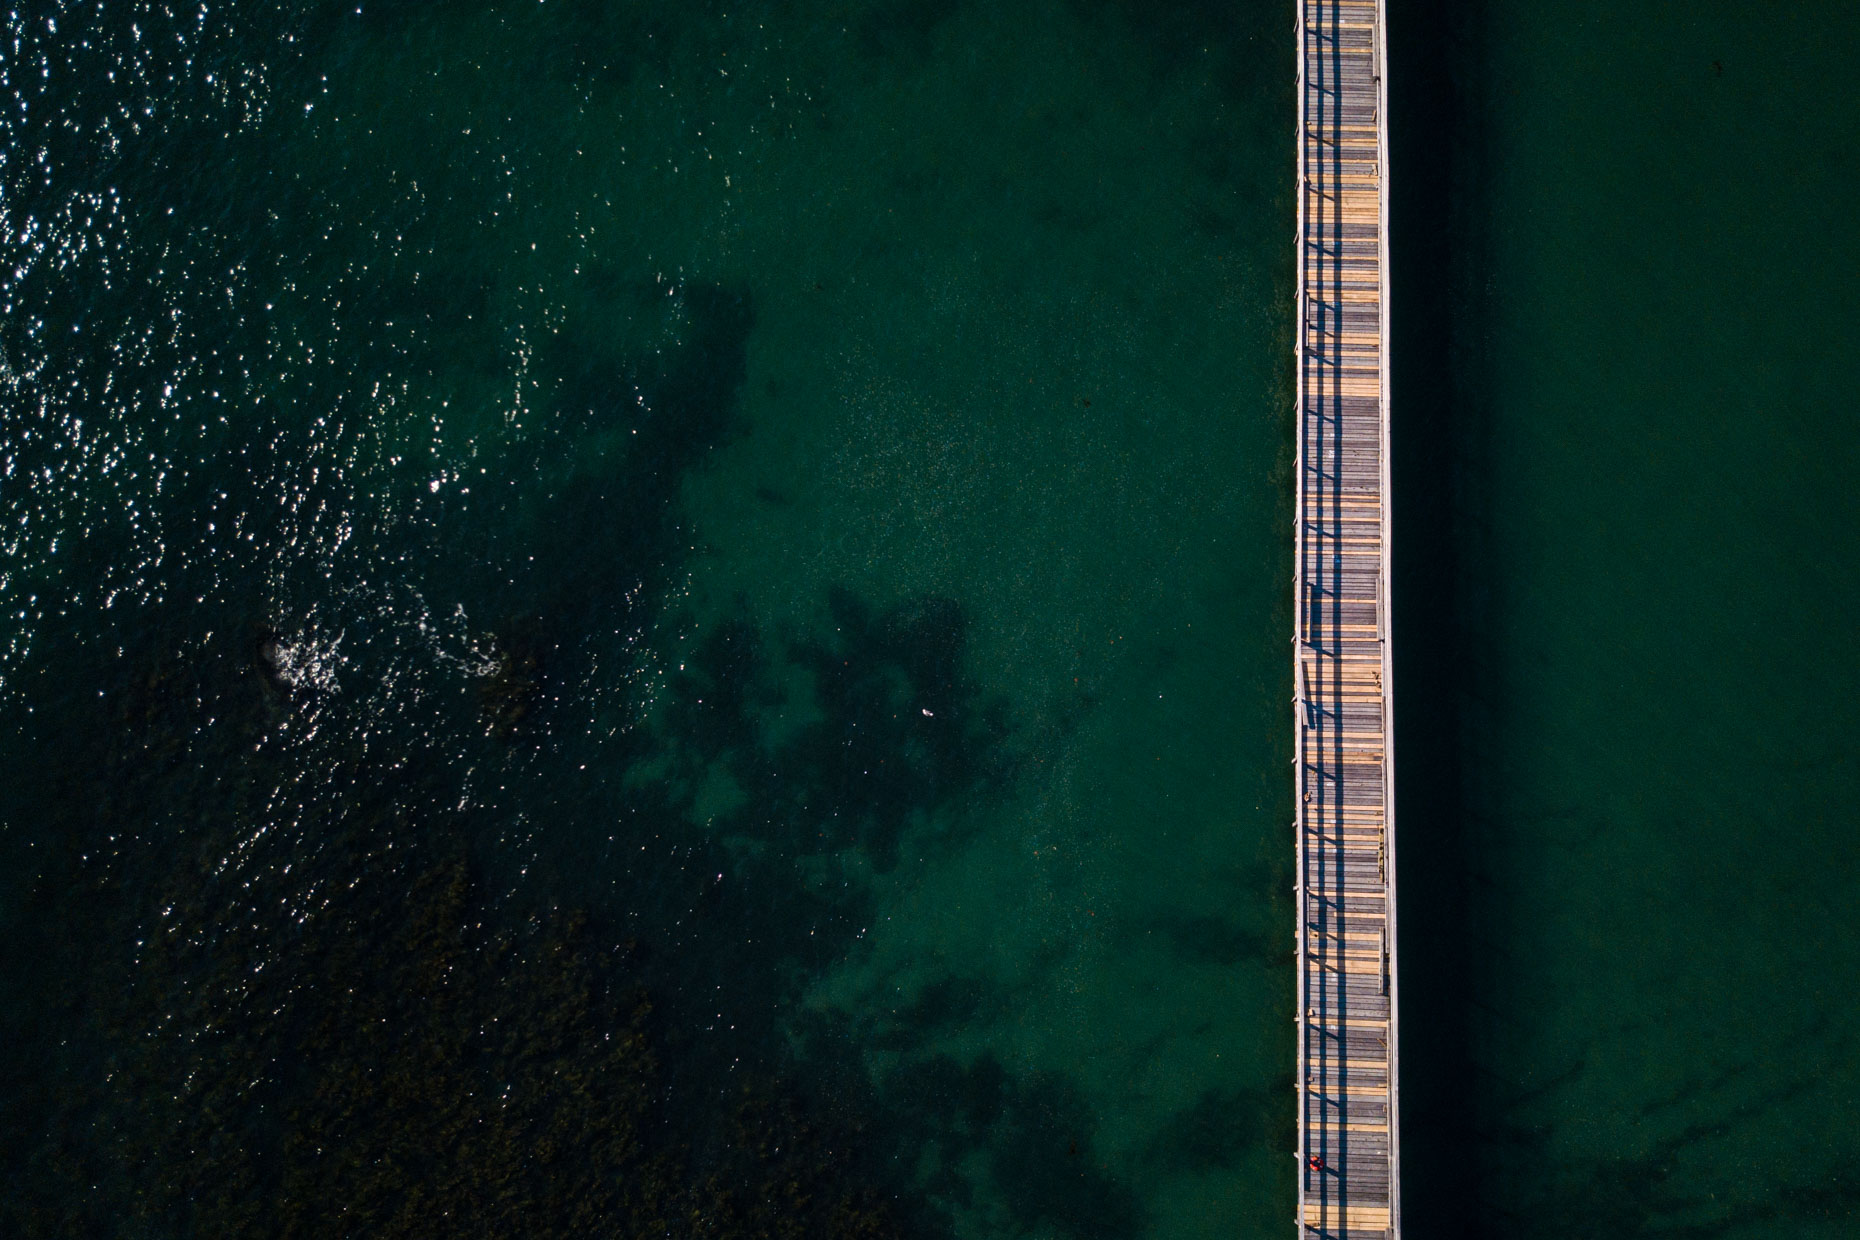 Aerial Photograph of pier in the ocean